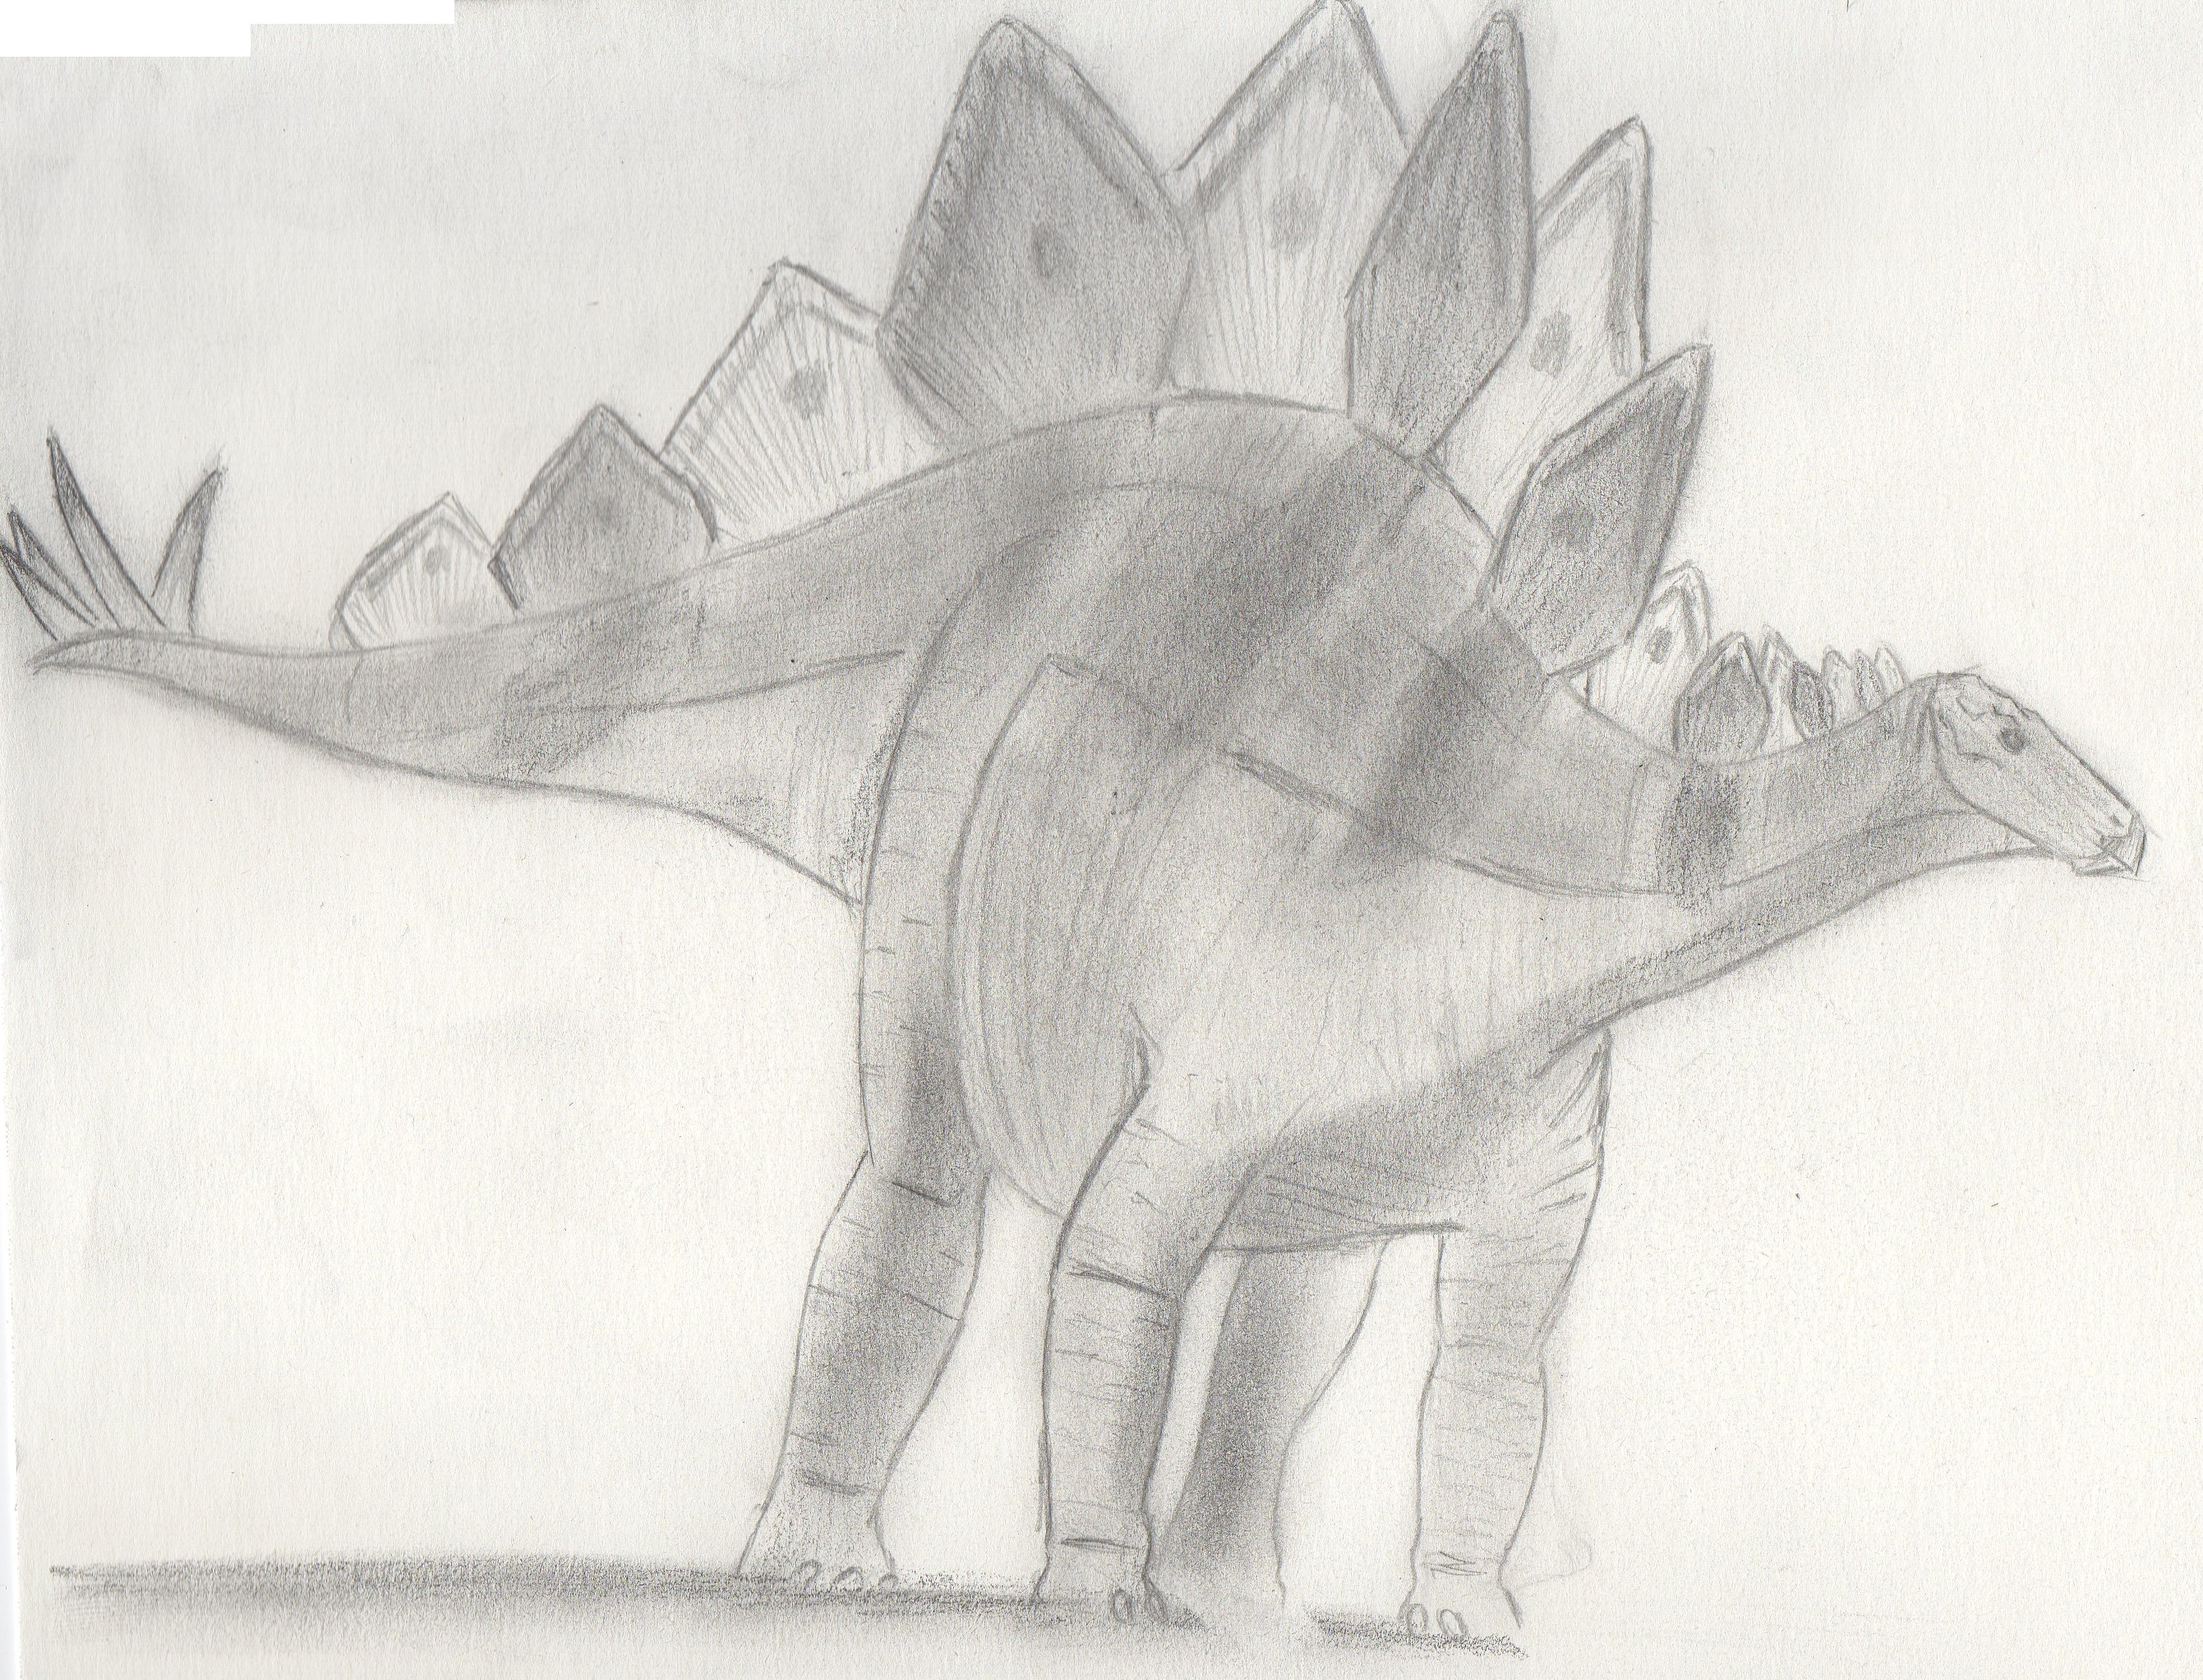 http://upload.wikimedia.org/wikipedia/commons/1/1c/Stegosaurus.jpg